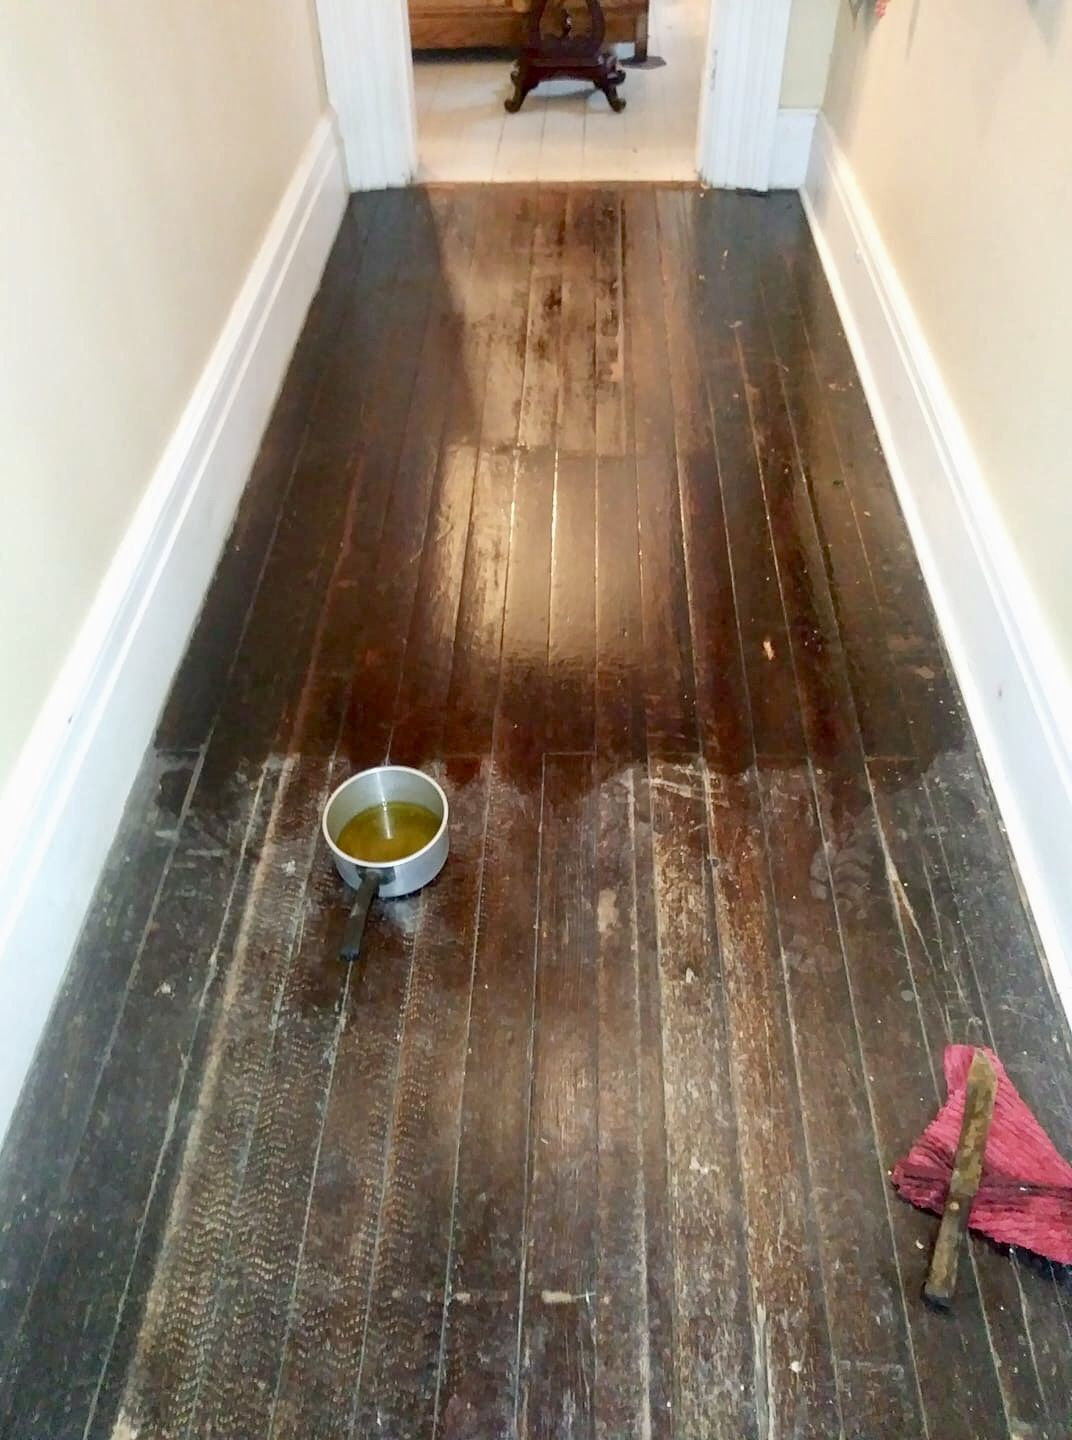 3 4 Cup Linseed Oil 1 4 Cup Turpentine And 1 4 Cup Vinegar Mix Together And Put On With Steel Wool And Let Si Clean Tile Natural Cleaning Recipes Linseed Oil